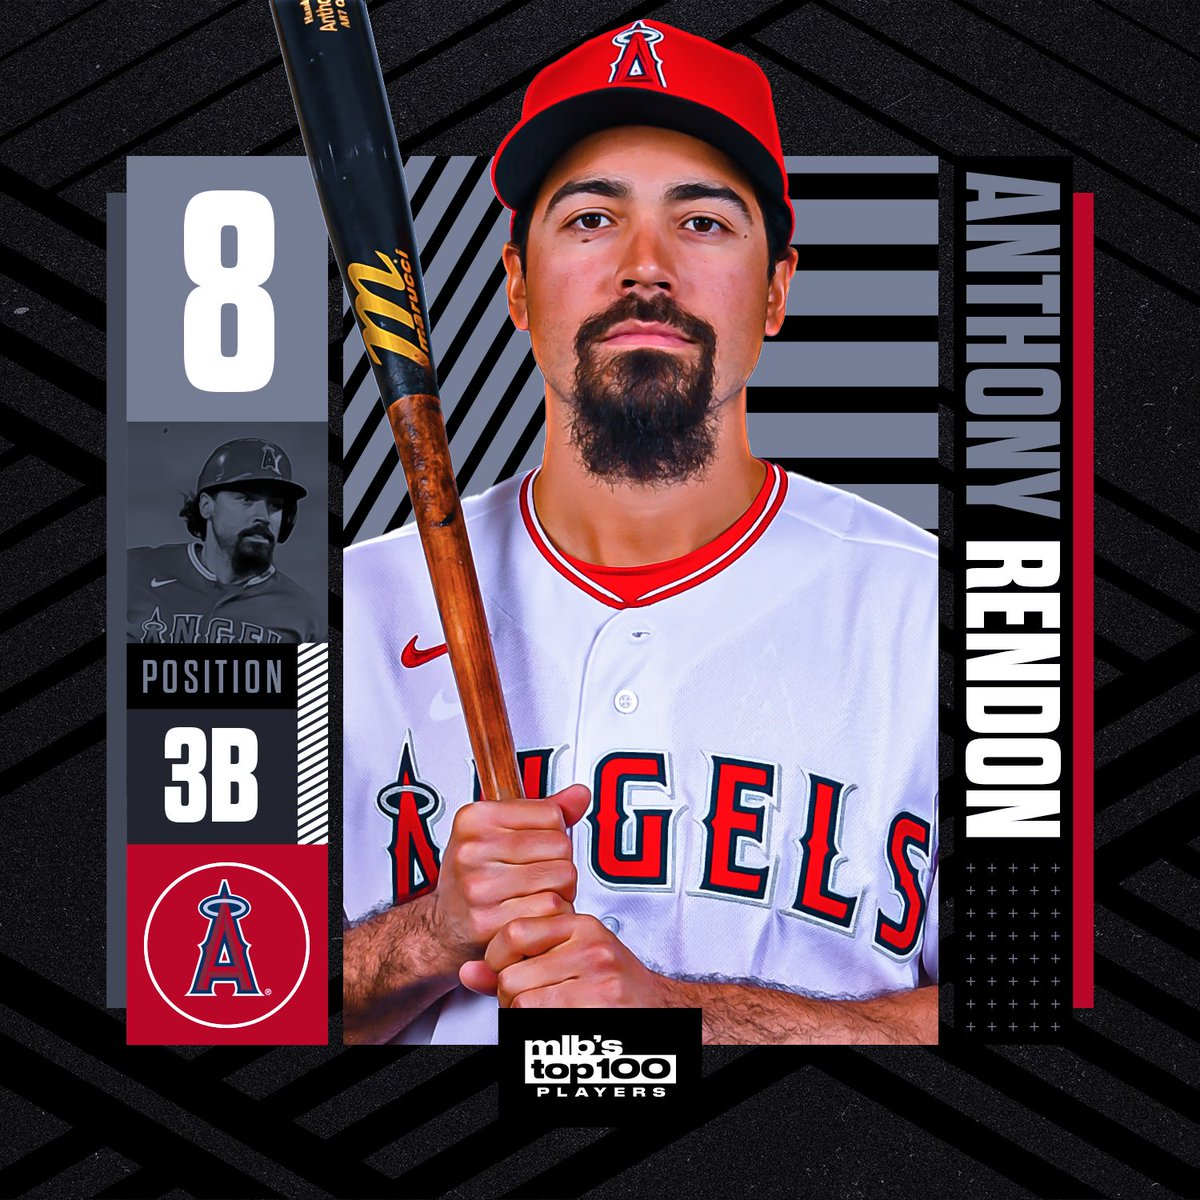 Belli, Yeli, and Rendon start the Top 10 of the #Top100RightNow.